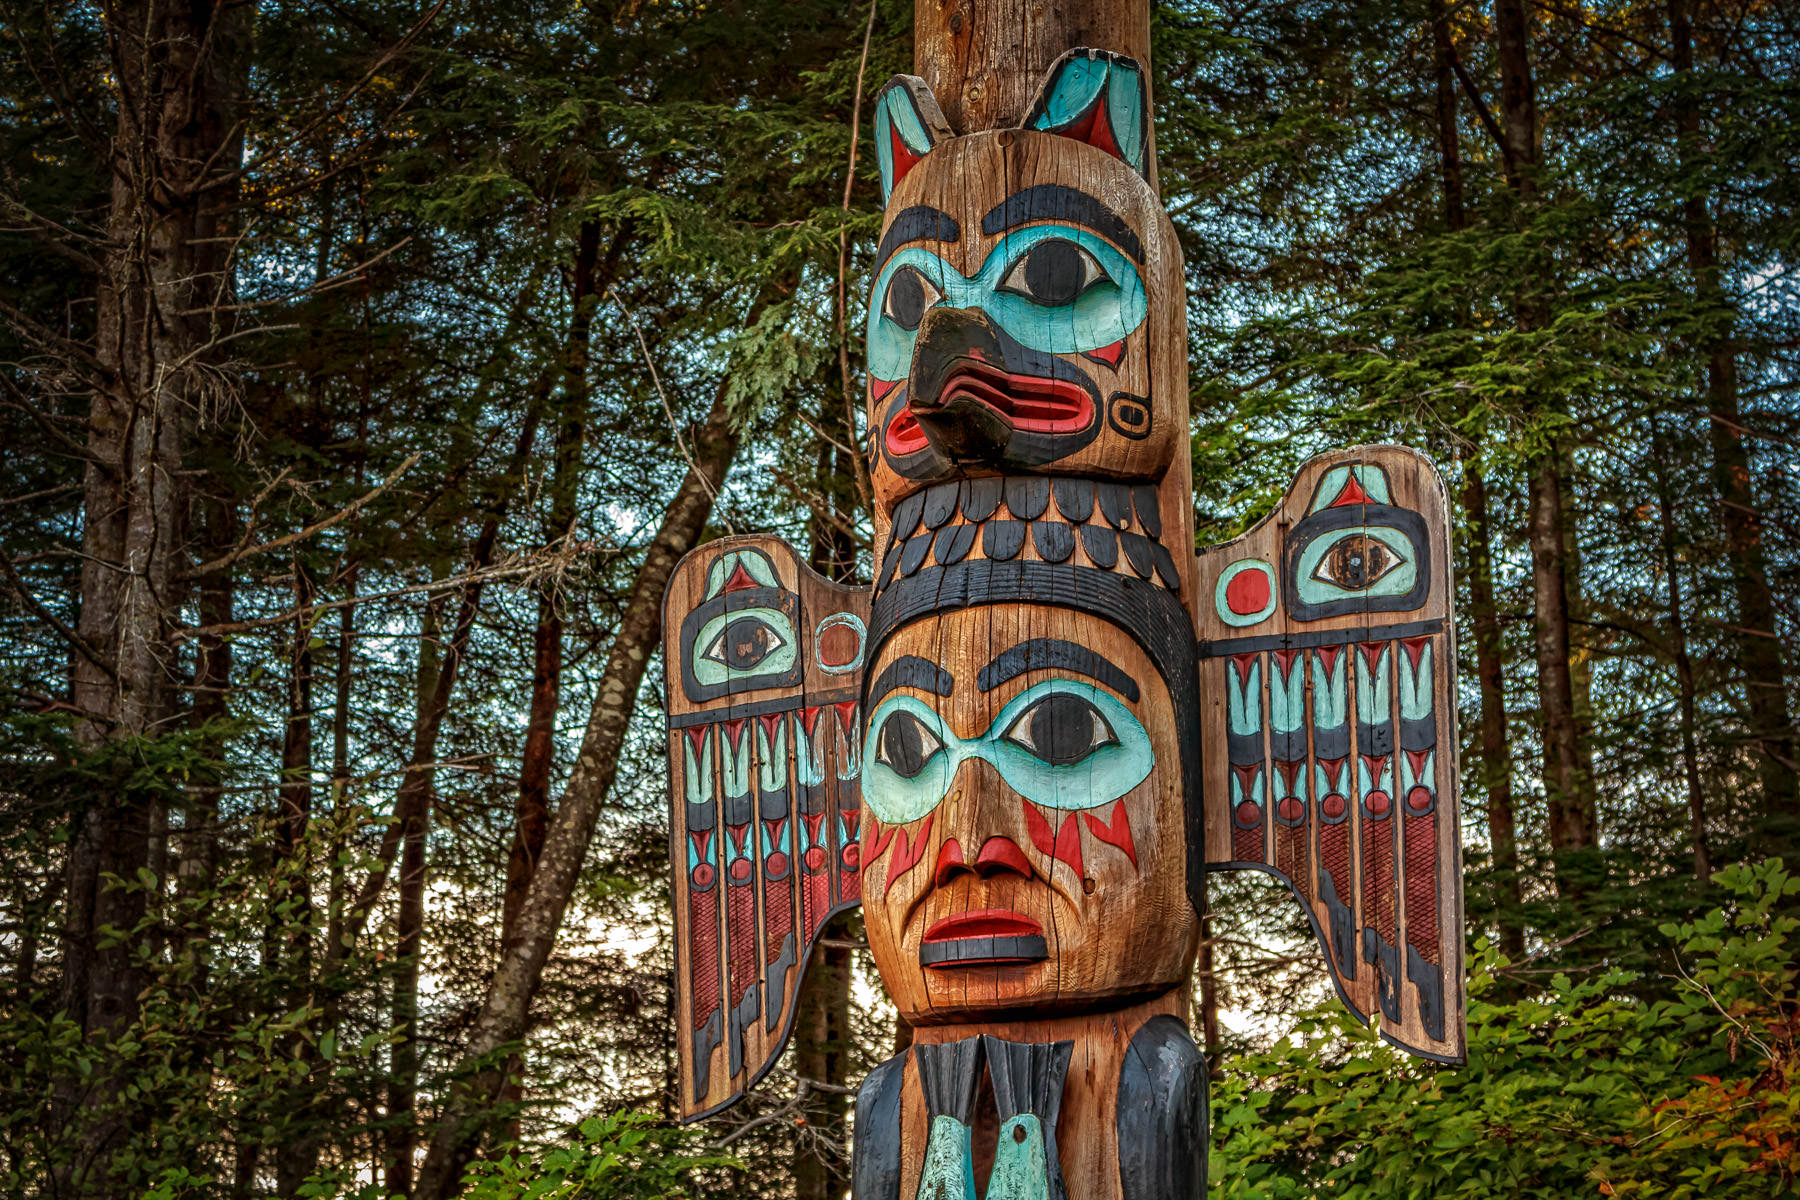 The Kadjuk Bird Pole at Ketchikan, Alaska's Totem Bight State Park depicts Raven forming the headdress of his wife, the Fog Woman, as she holds two salmon.